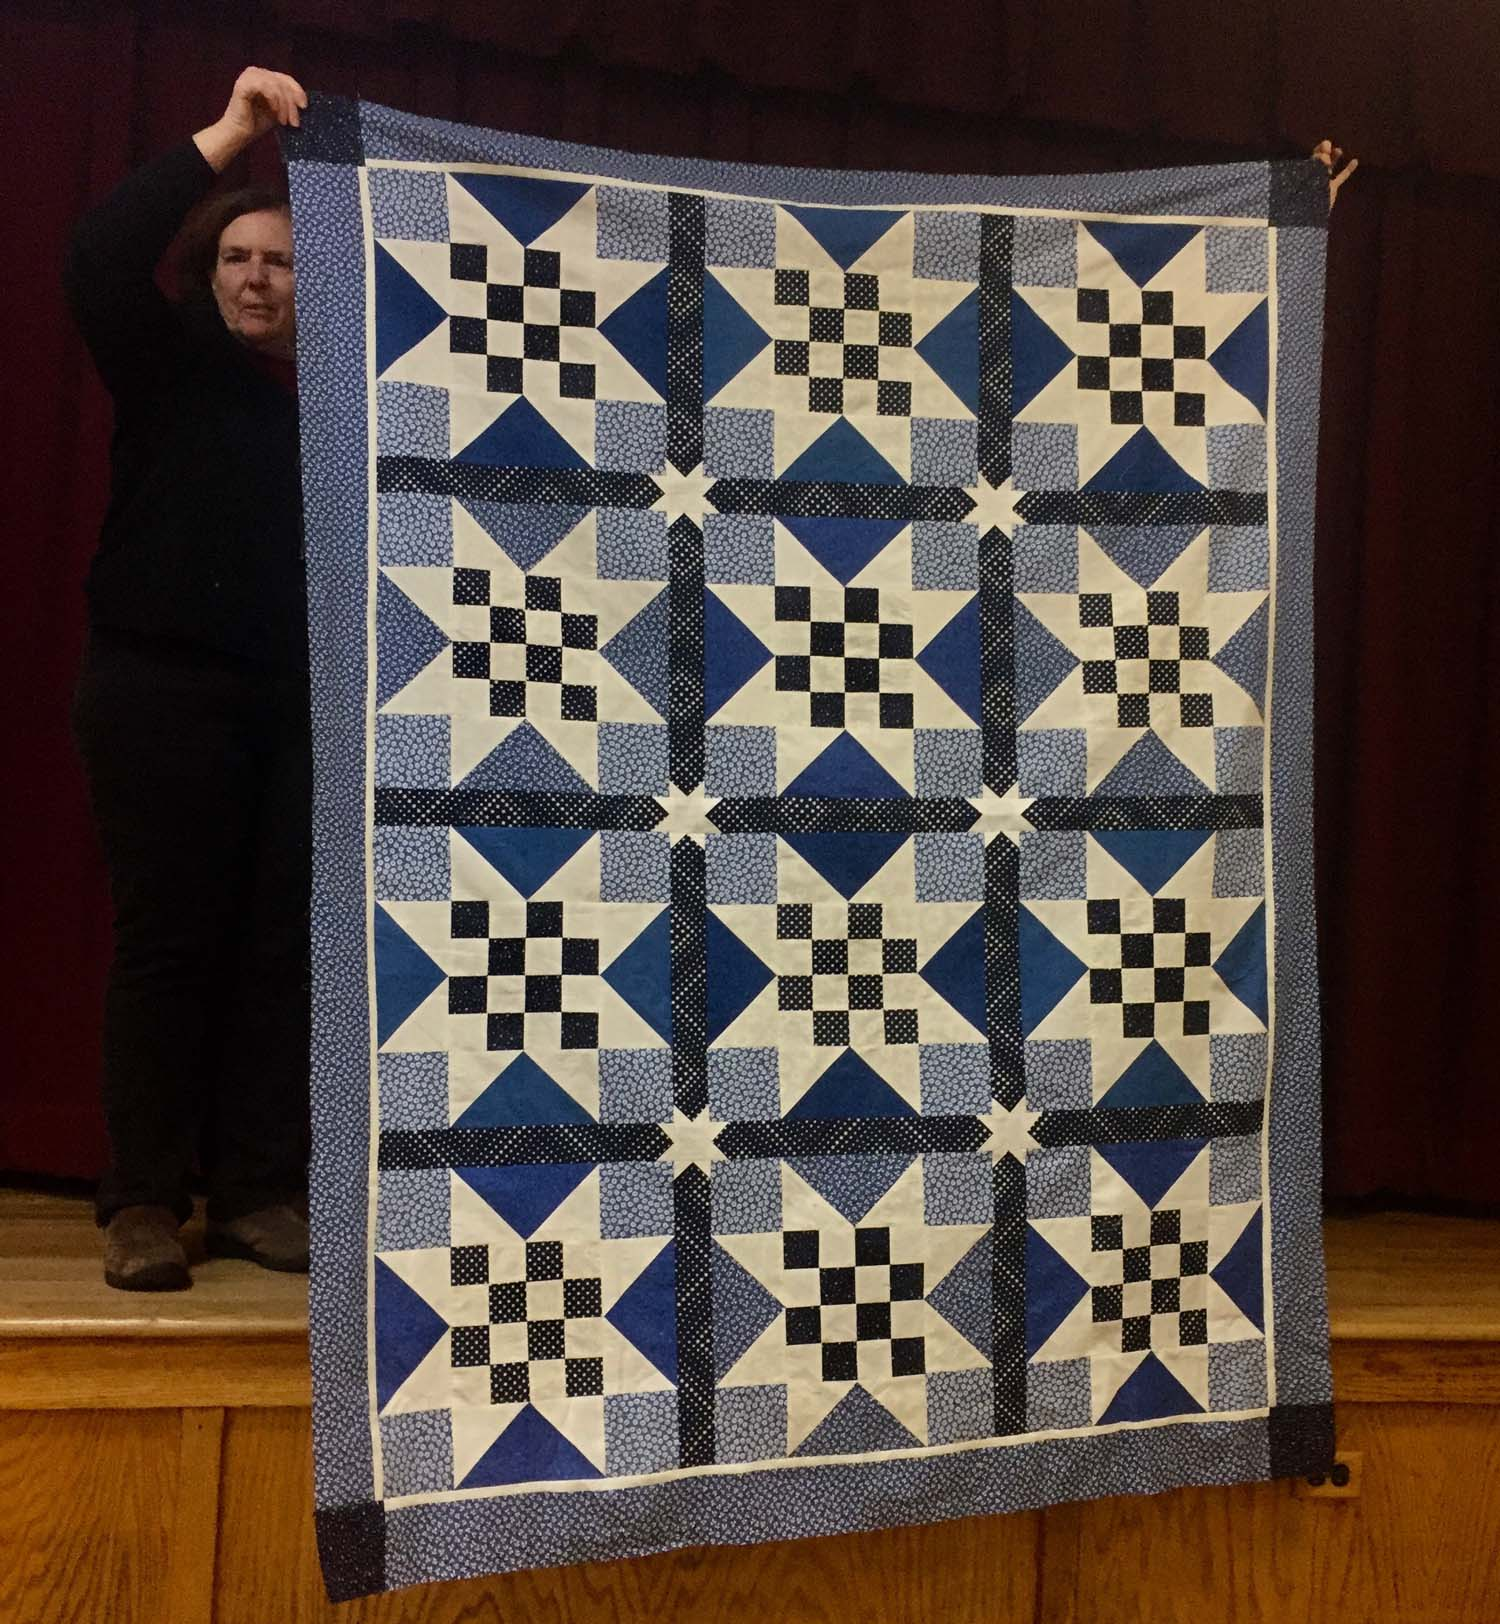 Labor of Love Quilt -- H.O.P.S. (Helping our Post 9/11 Survivors)for 9-11 survivor families by Valerie Turer